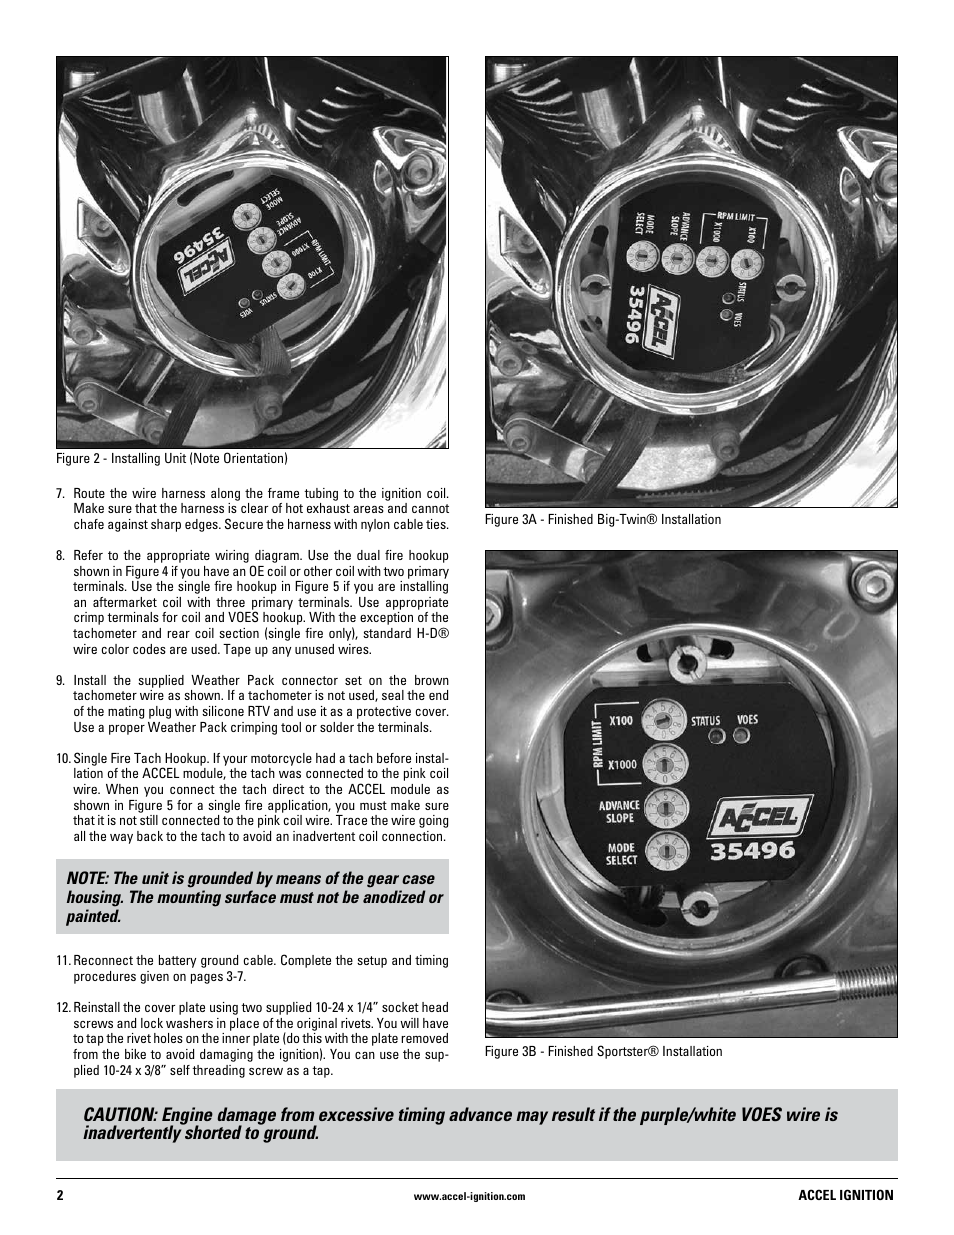 Mallory Ignition Accel 35496 User Manual Page 2 8 Rev Limiter Wiring Diagram